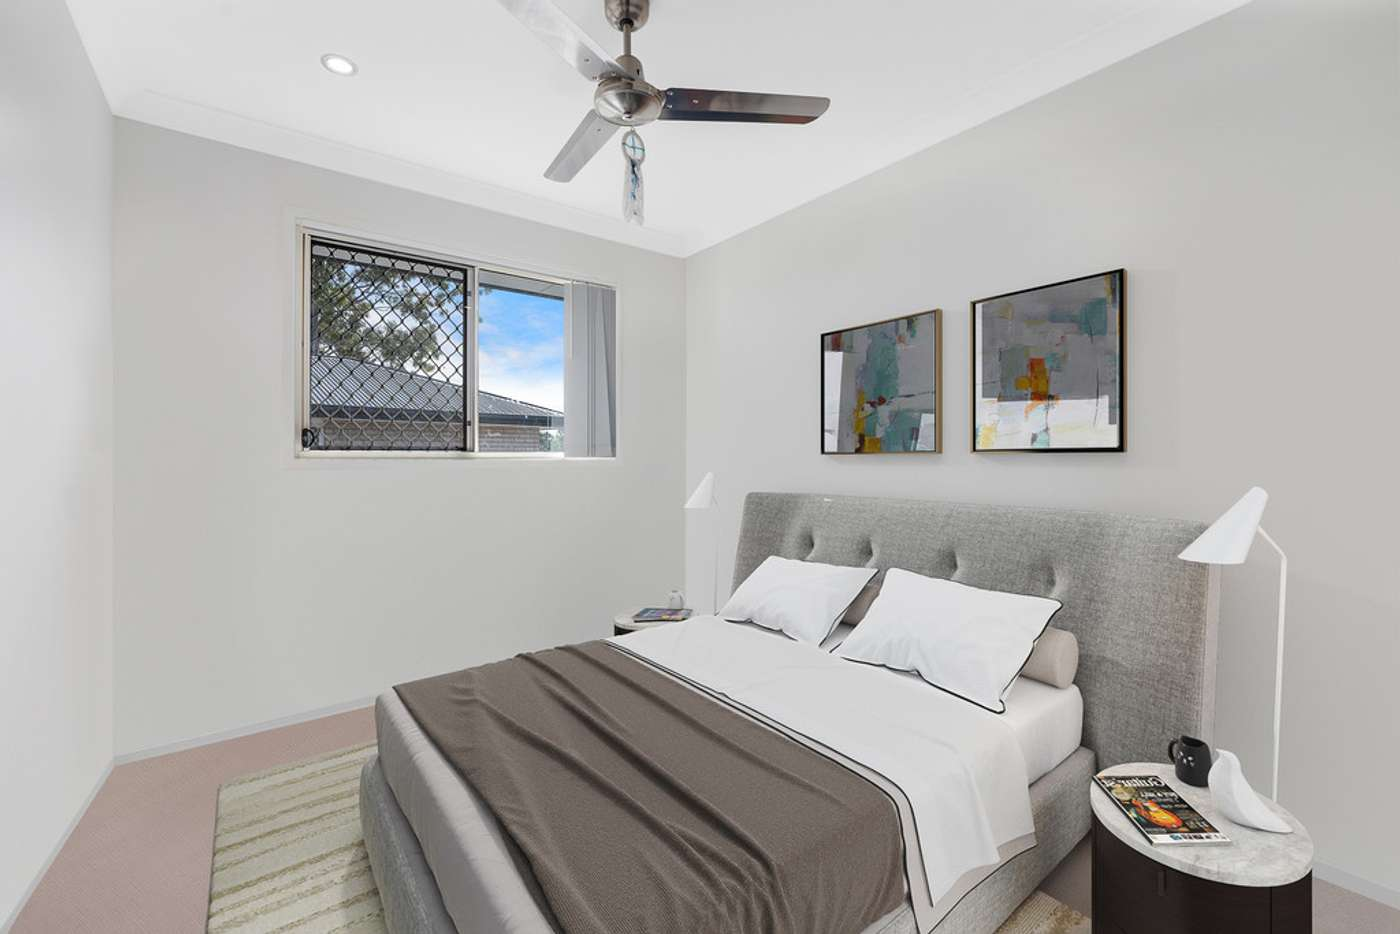 Fifth view of Homely house listing, 7/62 Station Road, Burpengary QLD 4505